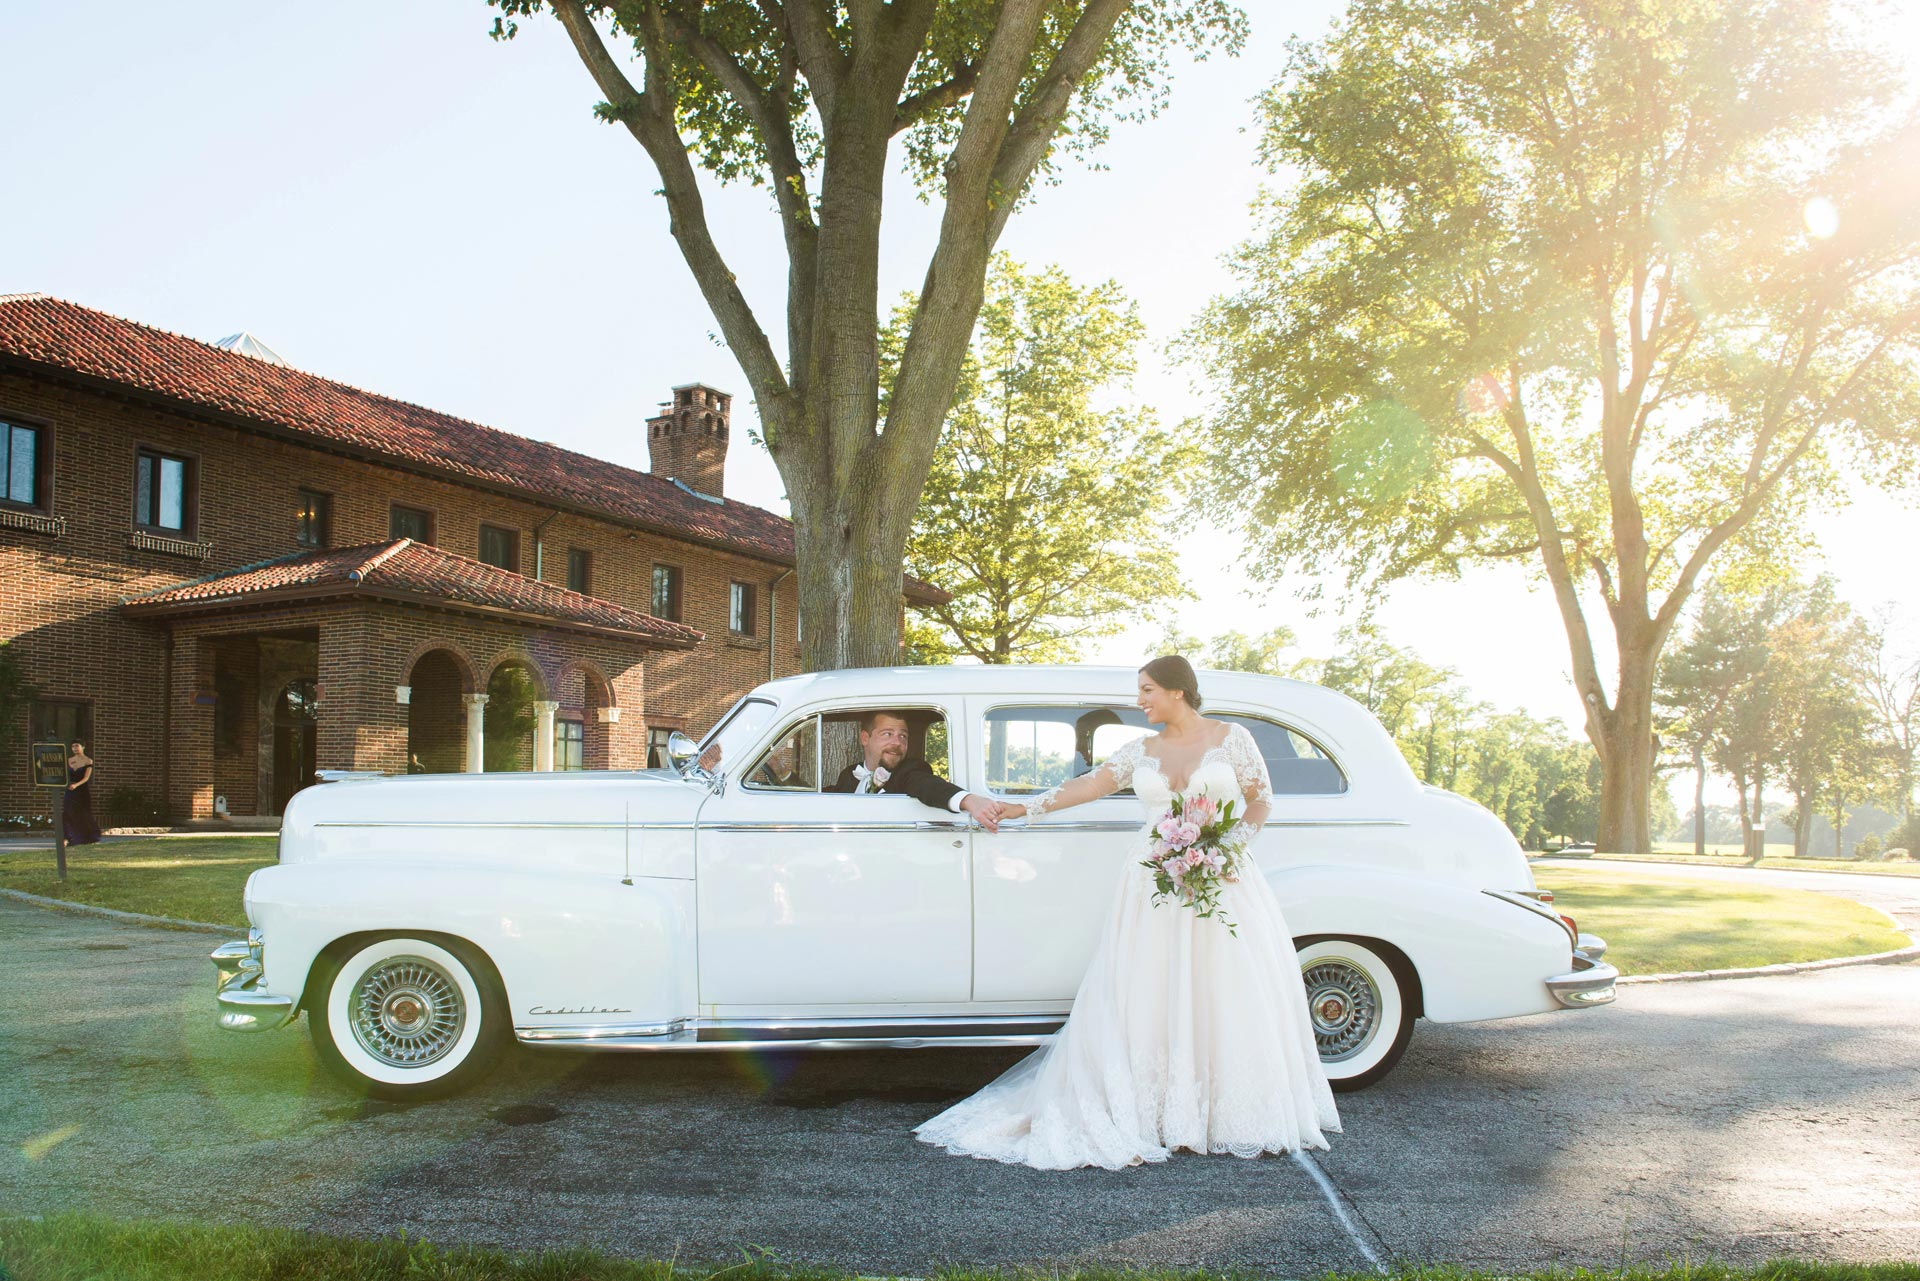 Bride and groom arriving in style at their wedding reception venue at the Village Club of Sands Point, NY